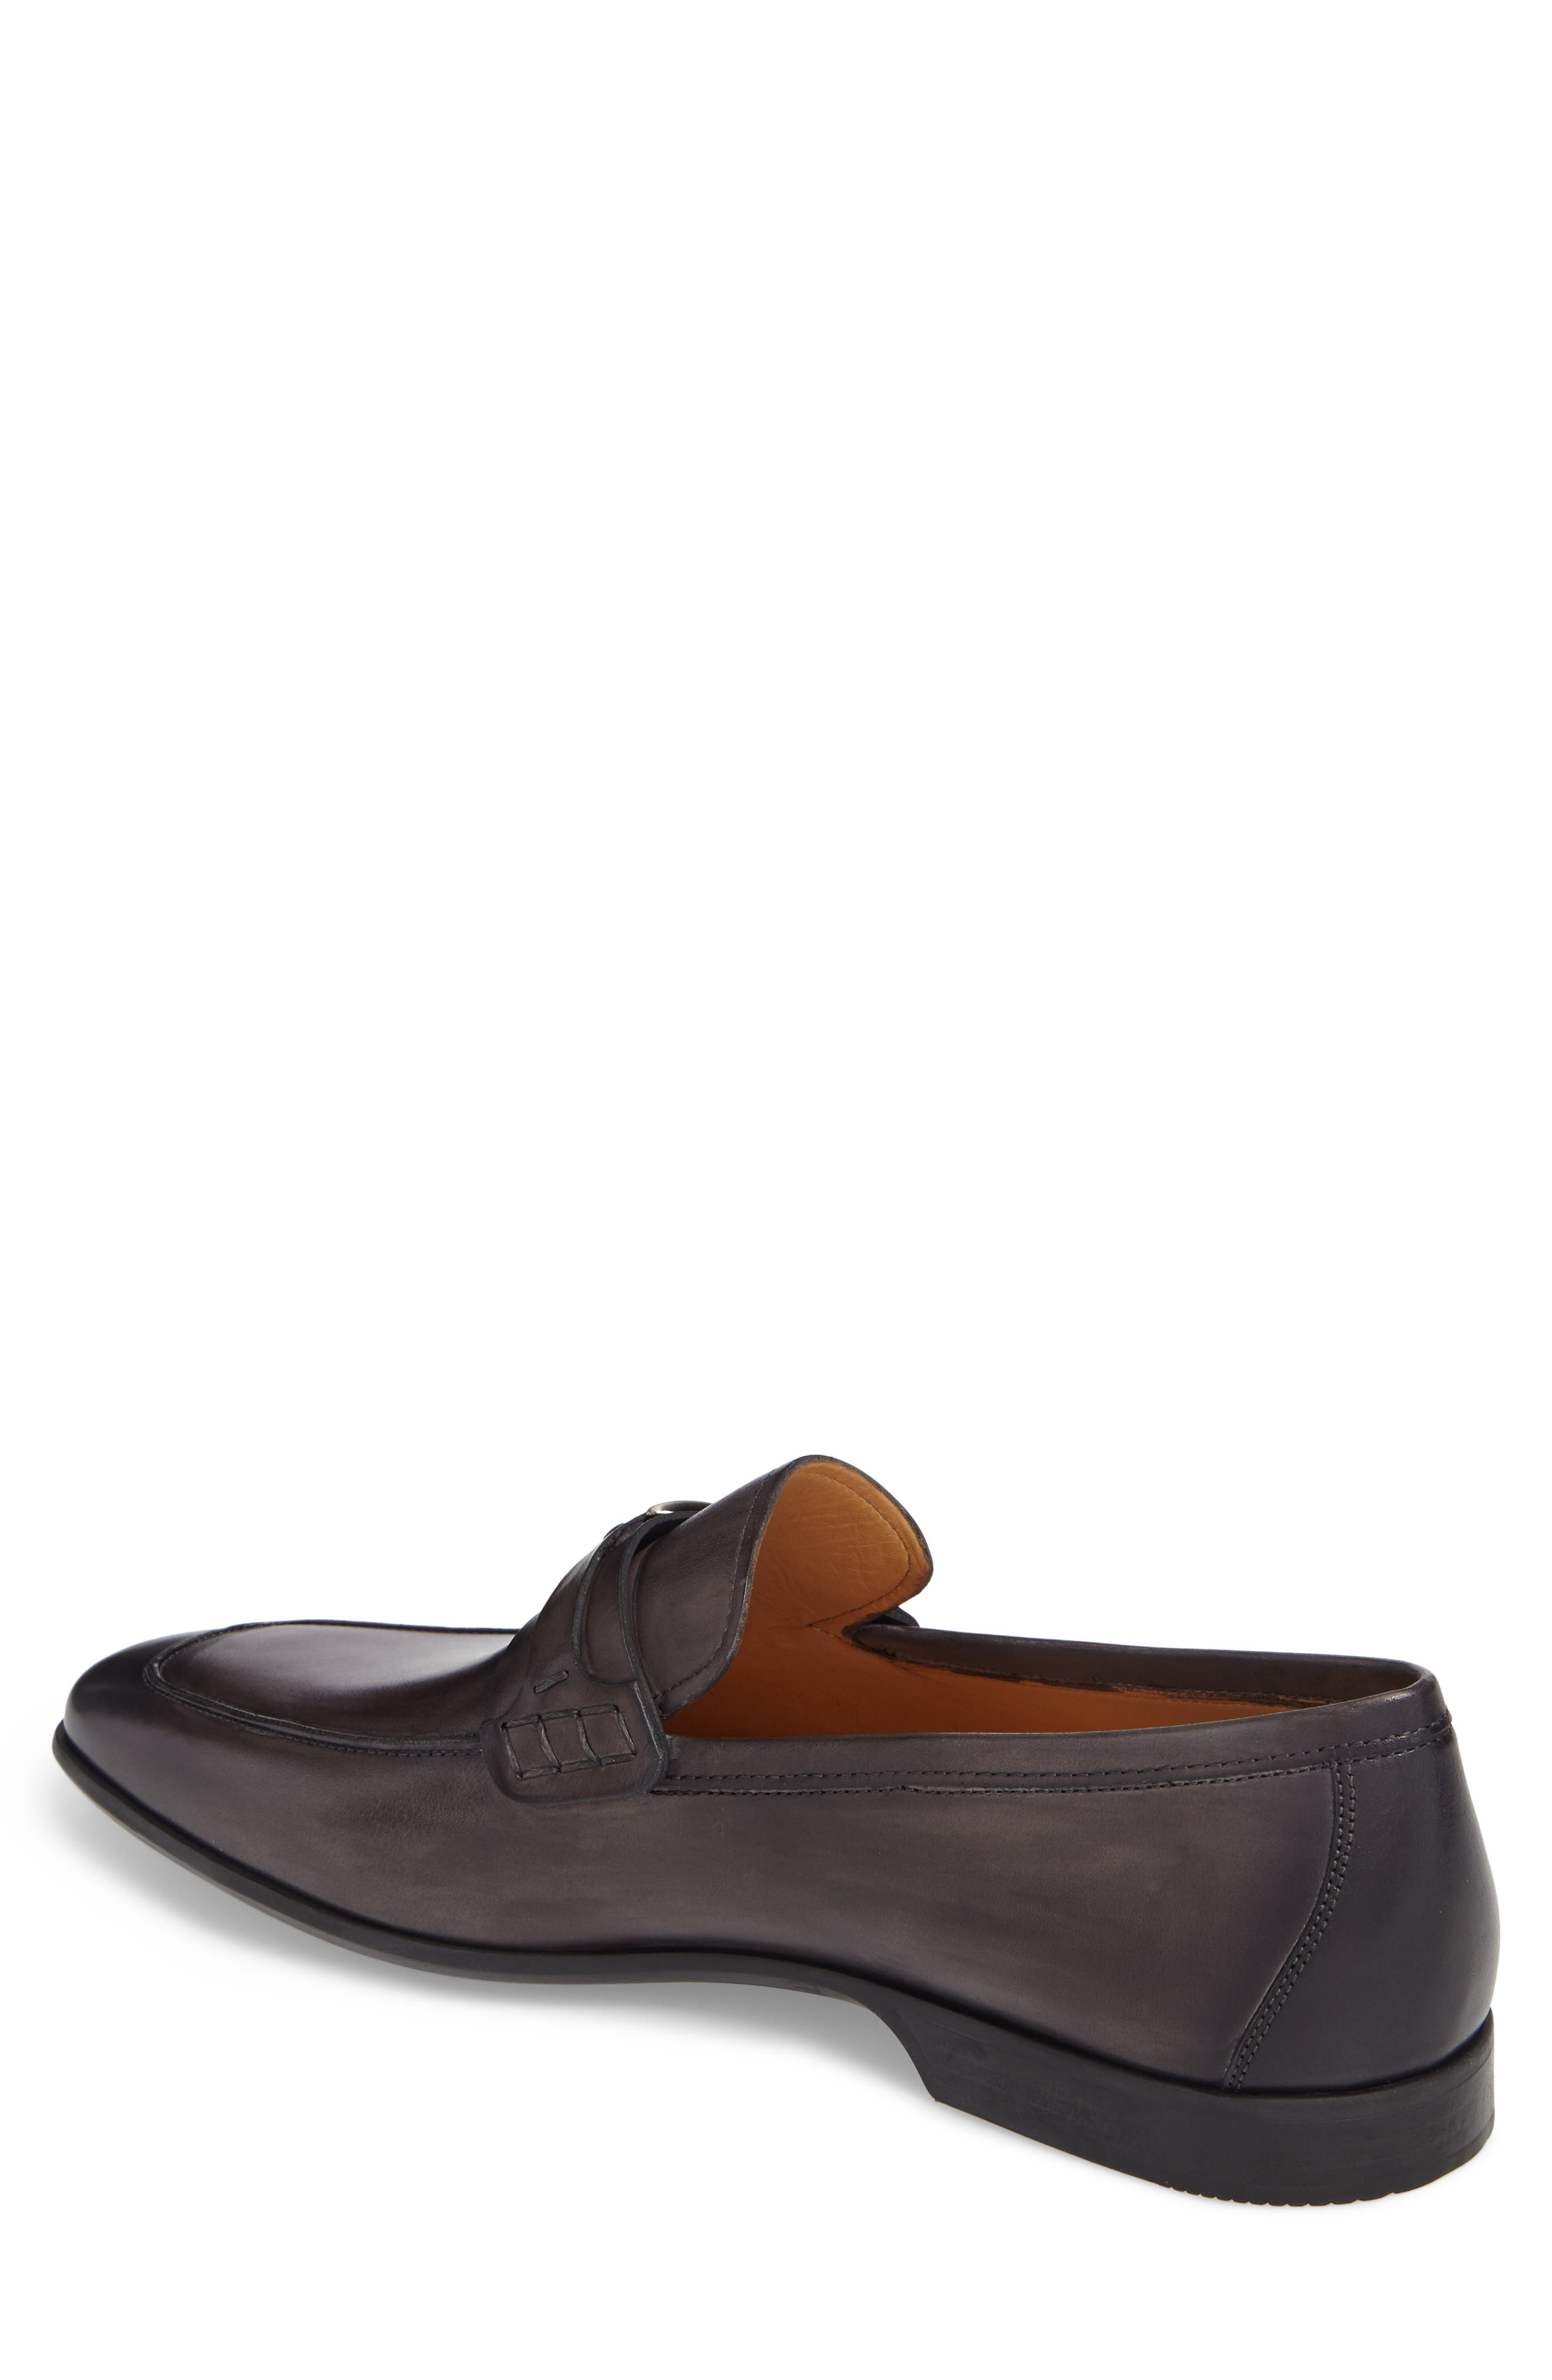 Rufino Bit Loafer,                             Alternate thumbnail 2, color,                             GREY LEATHER